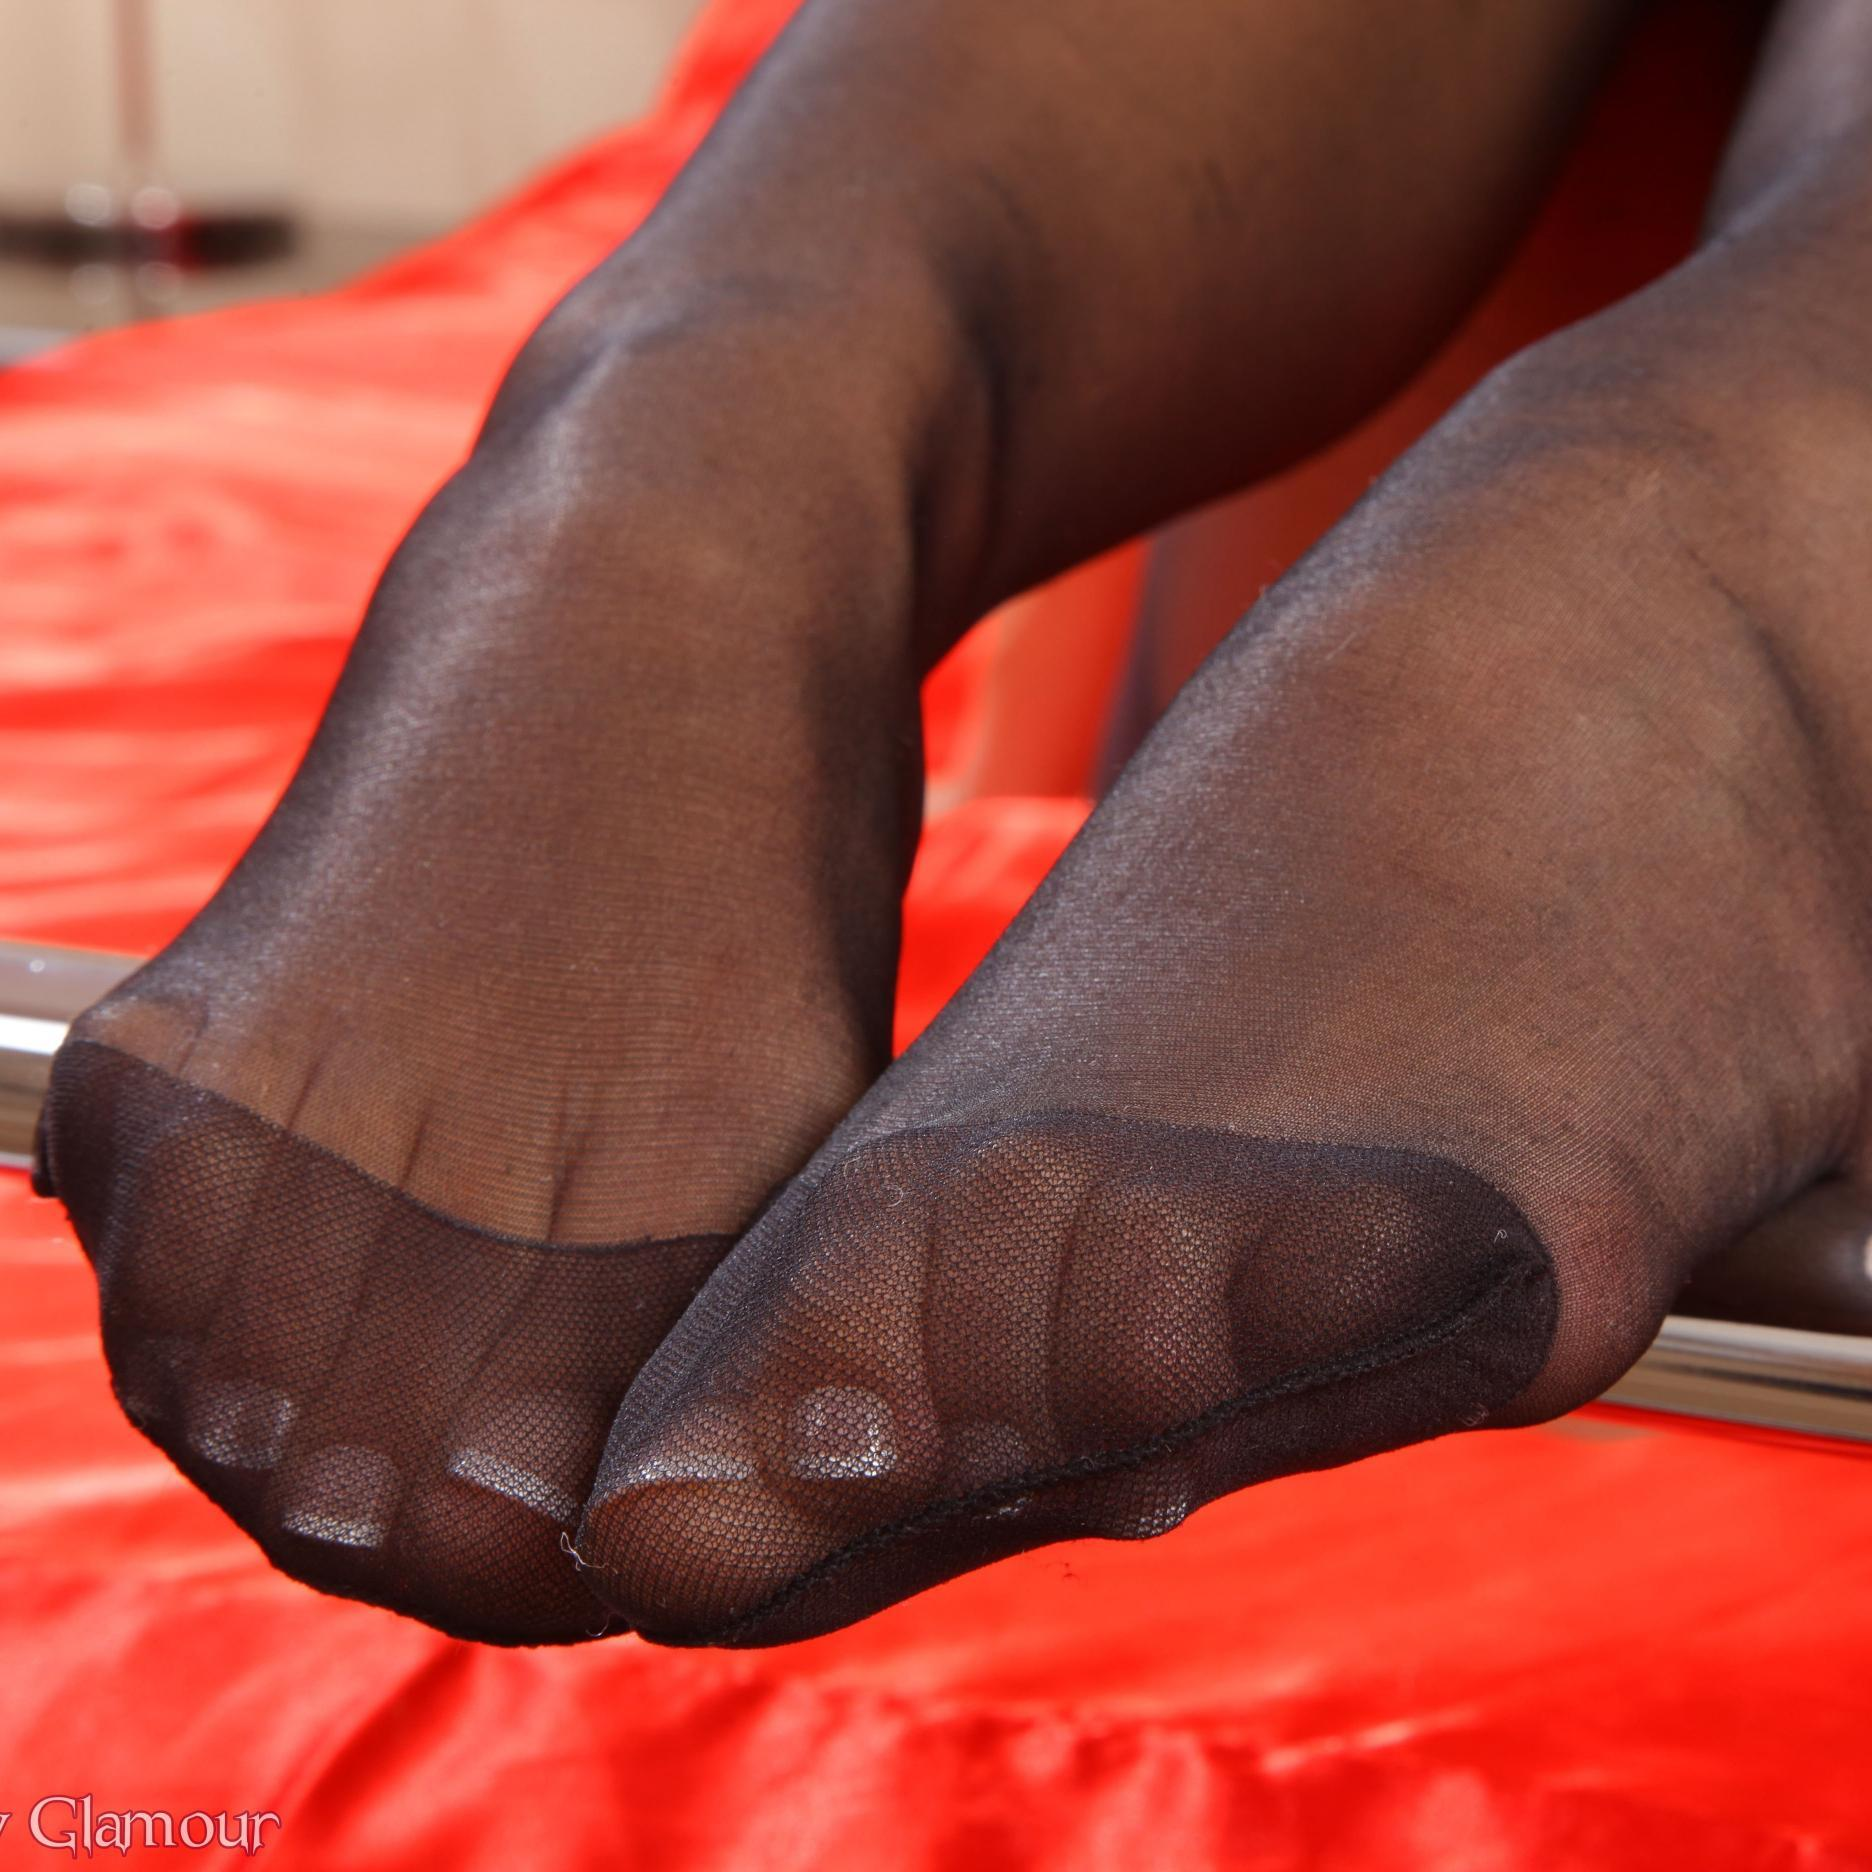 Nylon Feet Pantyhose Fuckers I Want 58